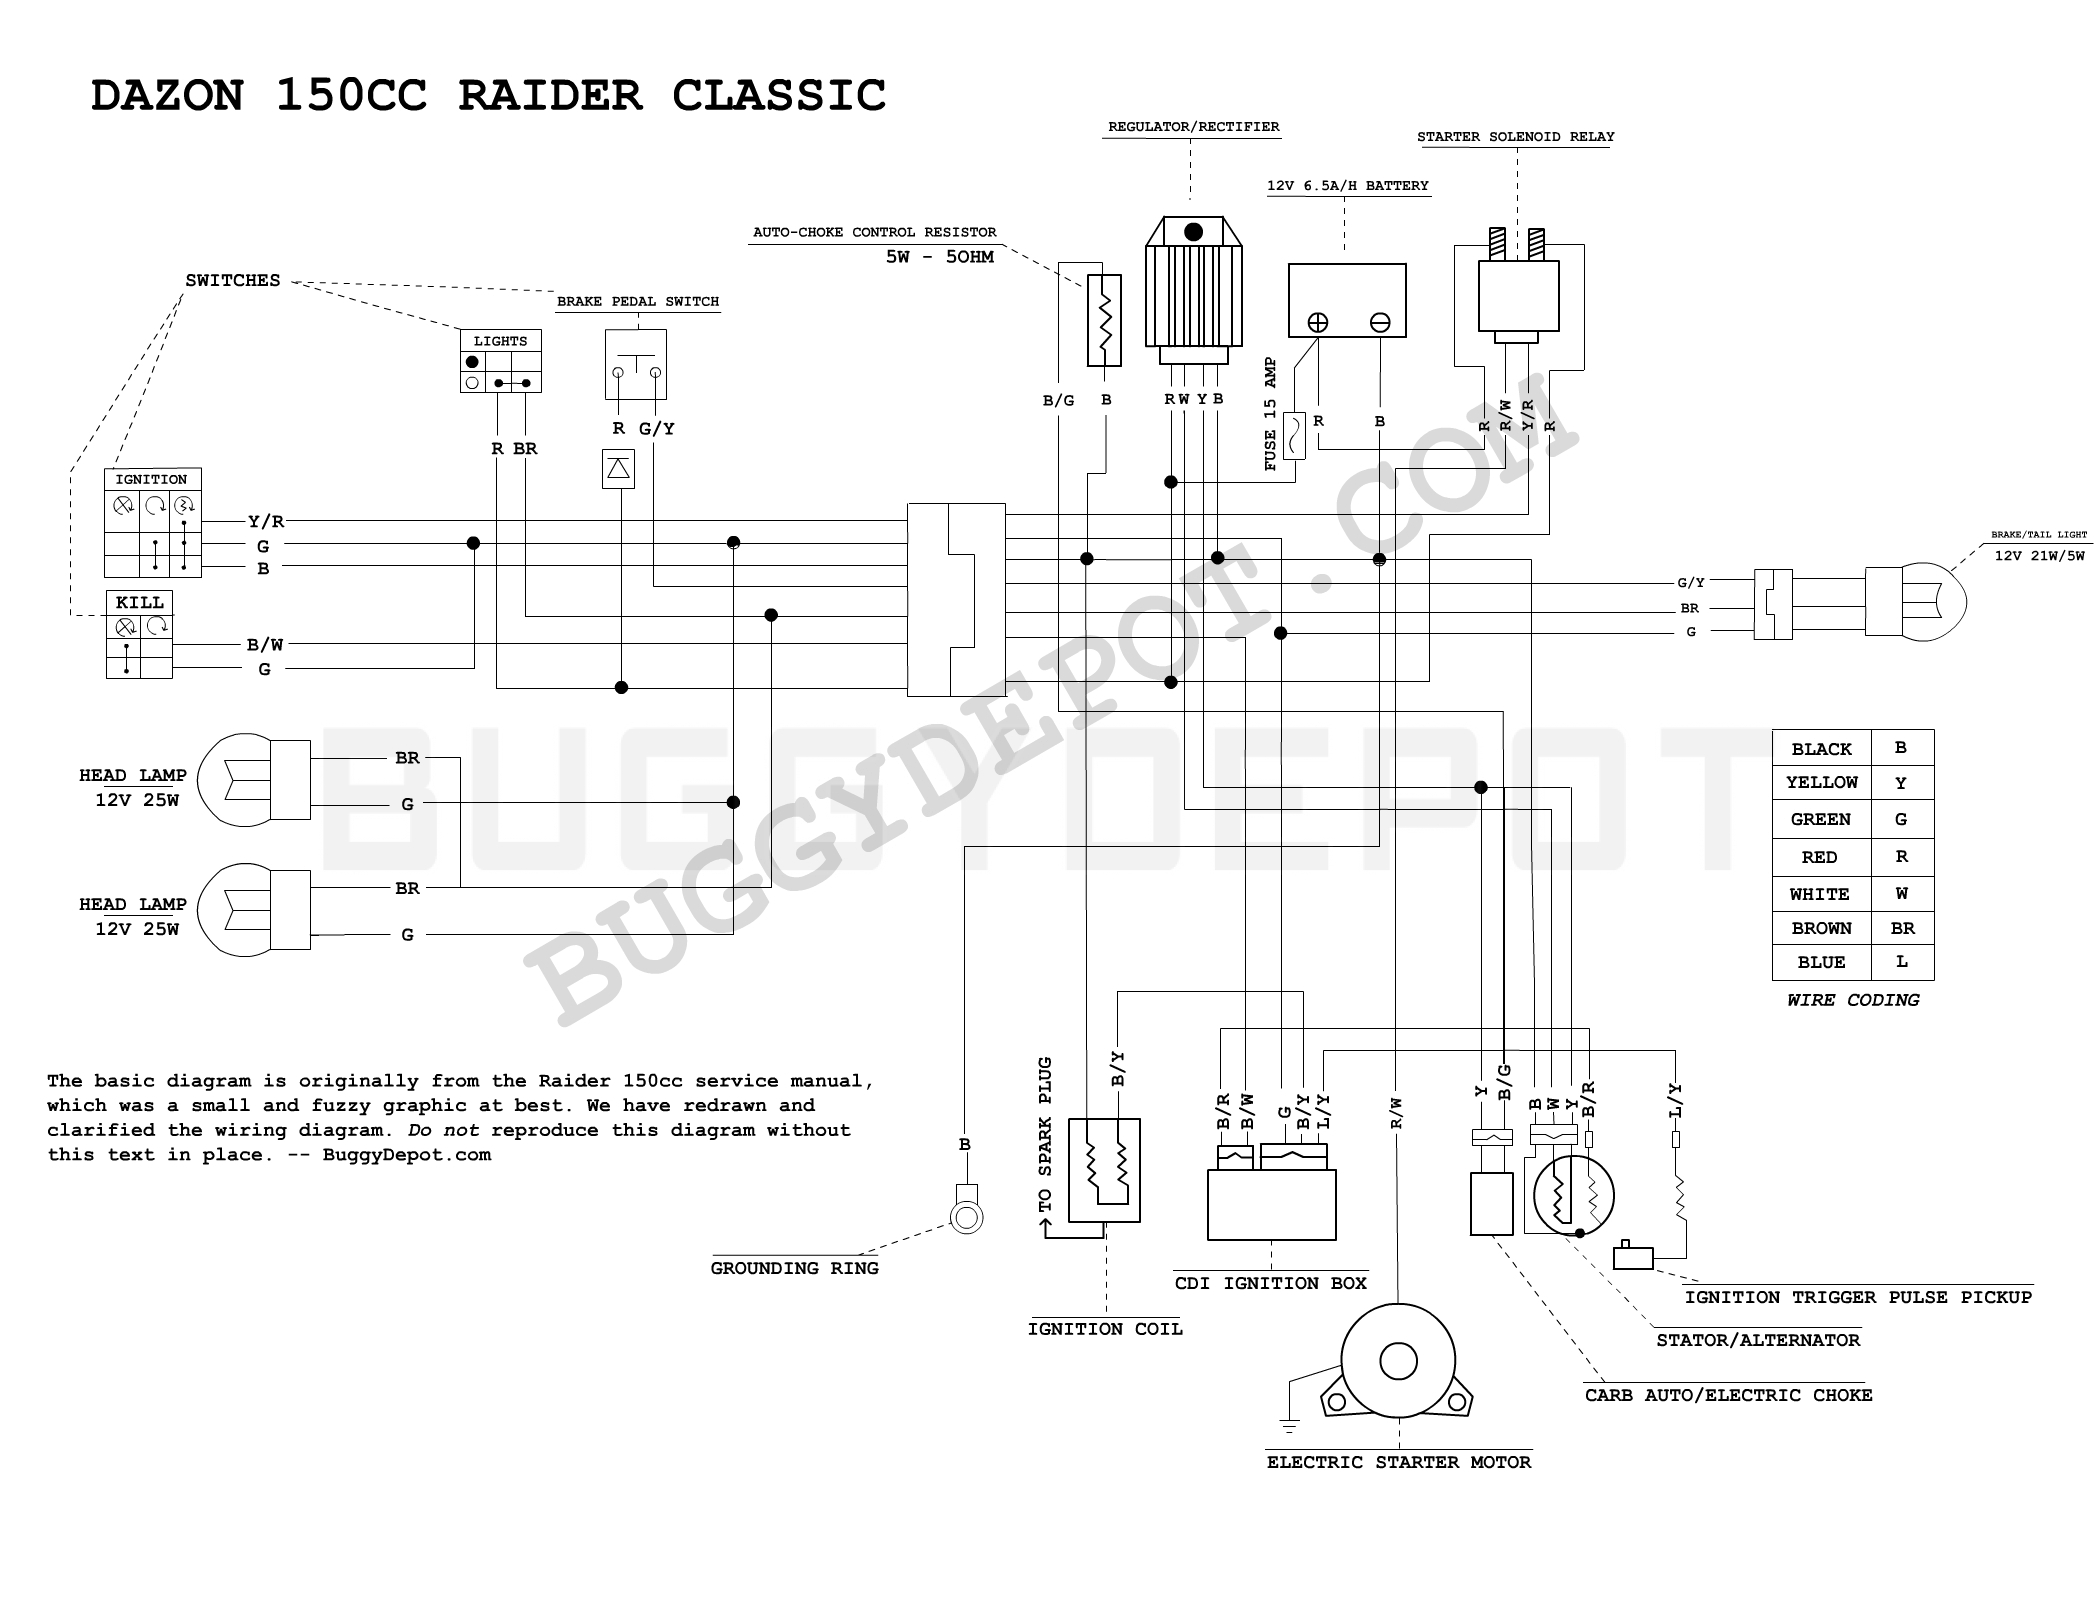 article_33_1278205207 dazon raider classic wiring diagram buggy depot technical center